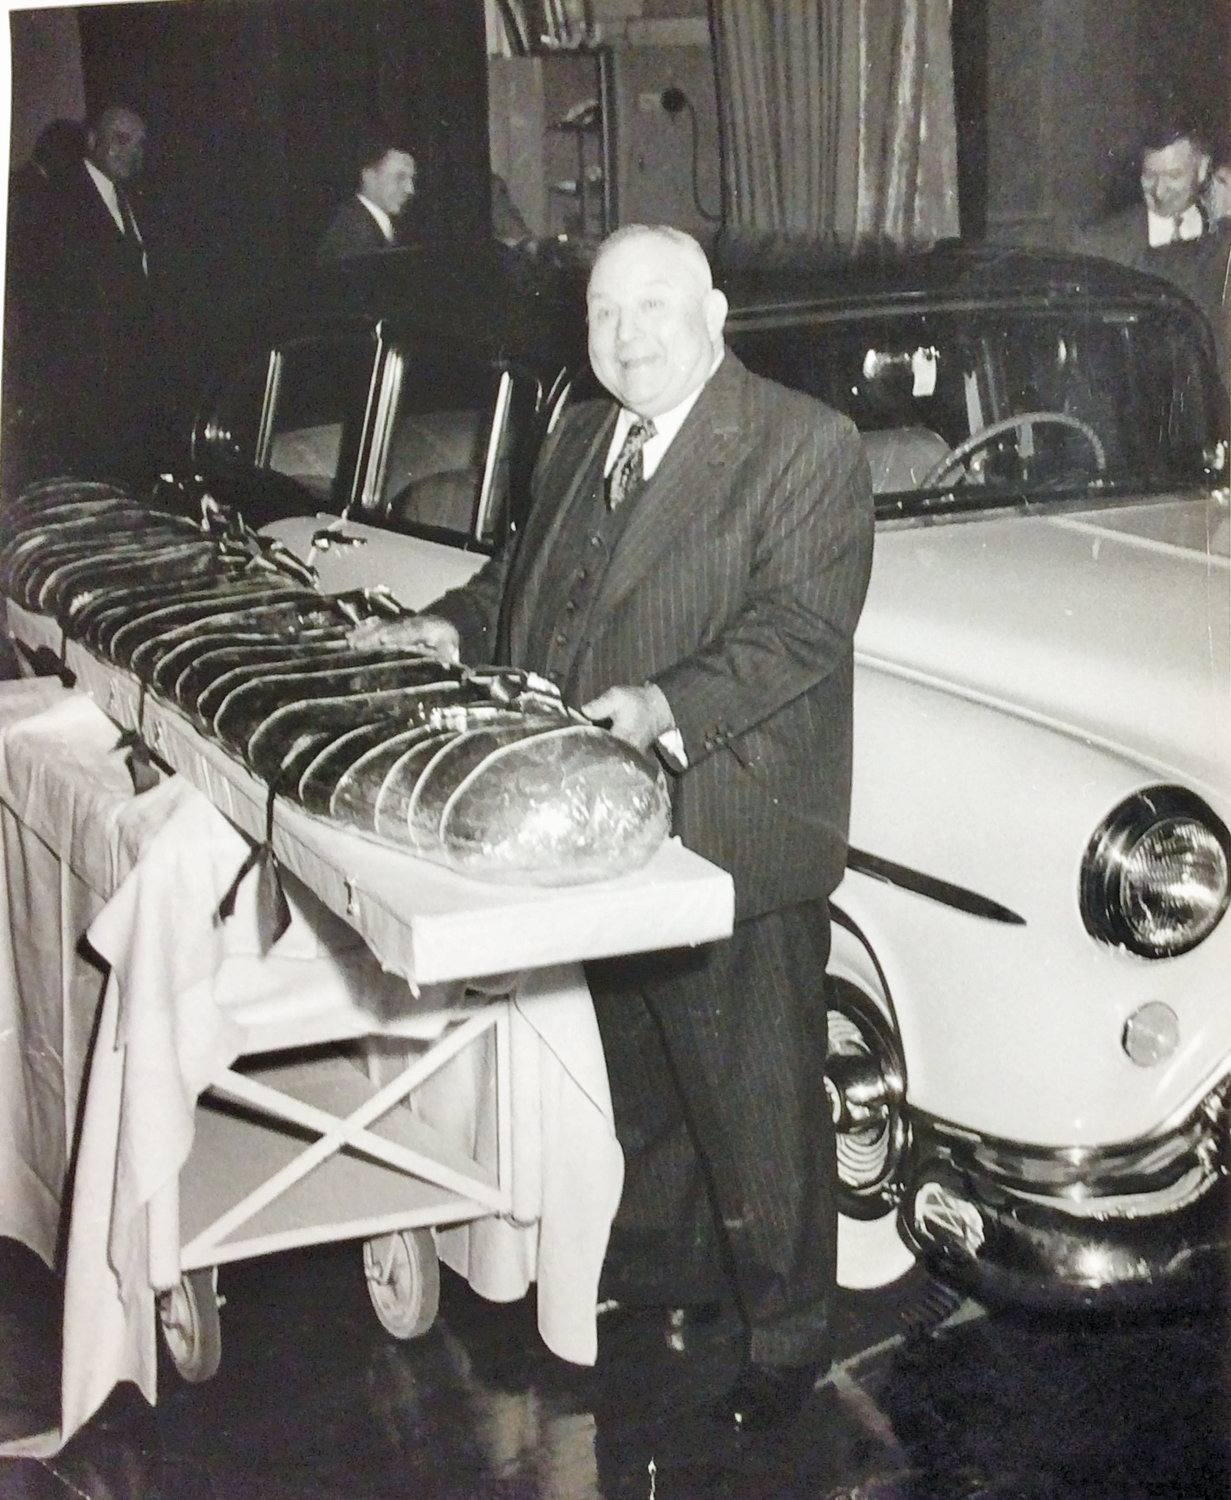 Ralph Young, MSU's longest-serving athletic director, at his retirement party in 1954 with his gifts — a new car and a 147-pound sandwich.